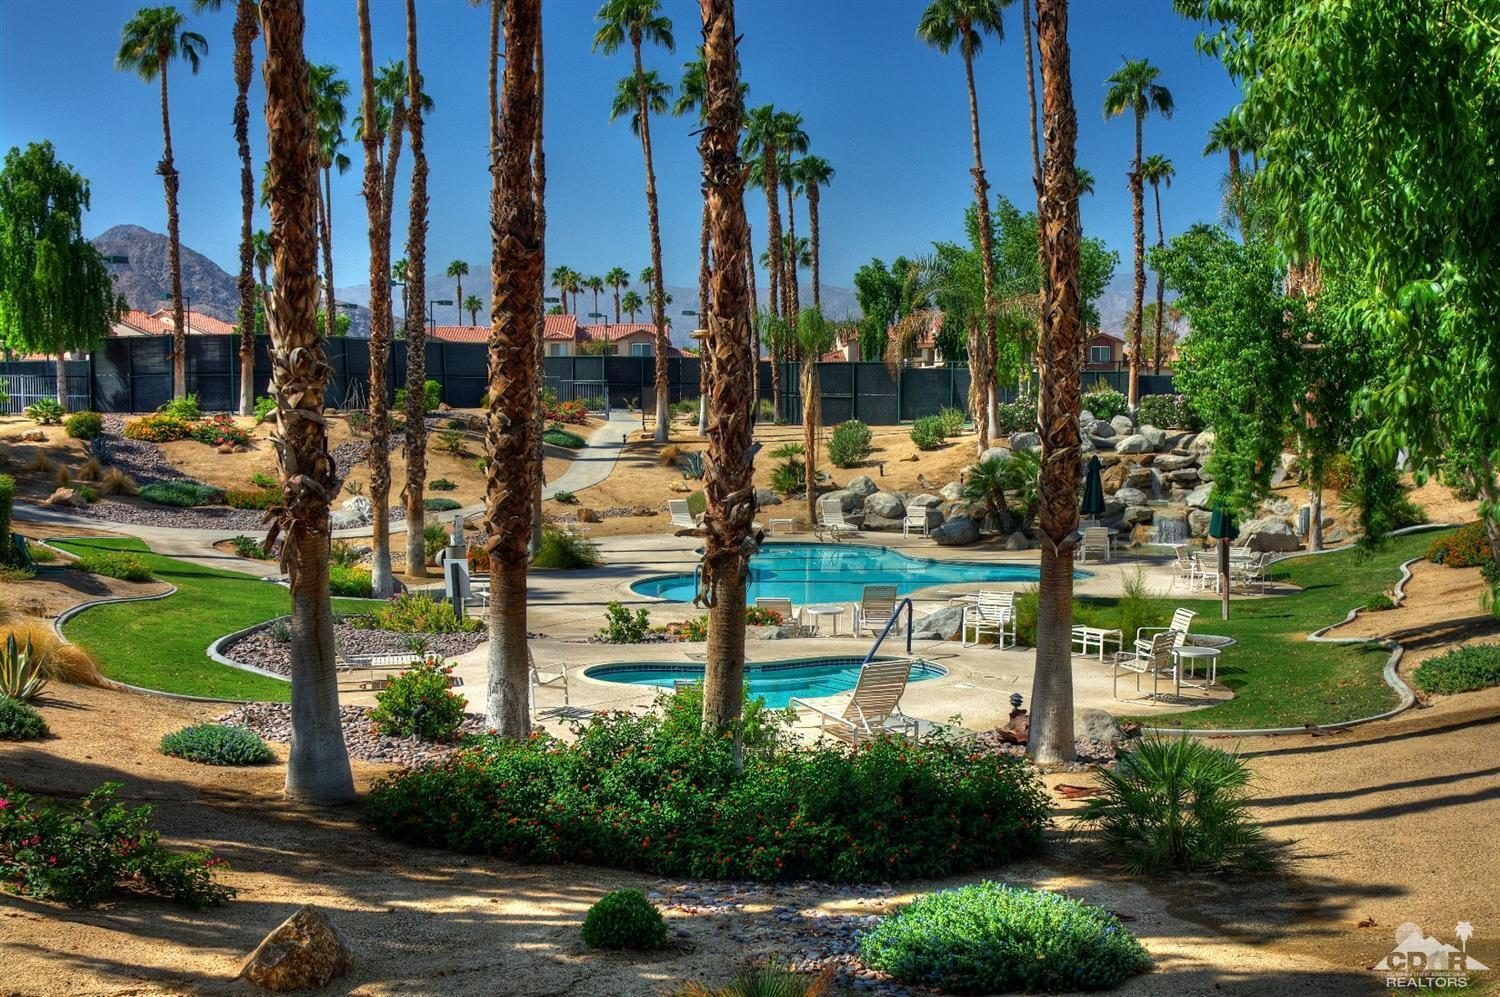 palm royale greater palm springs condos u0026 apartments for sale